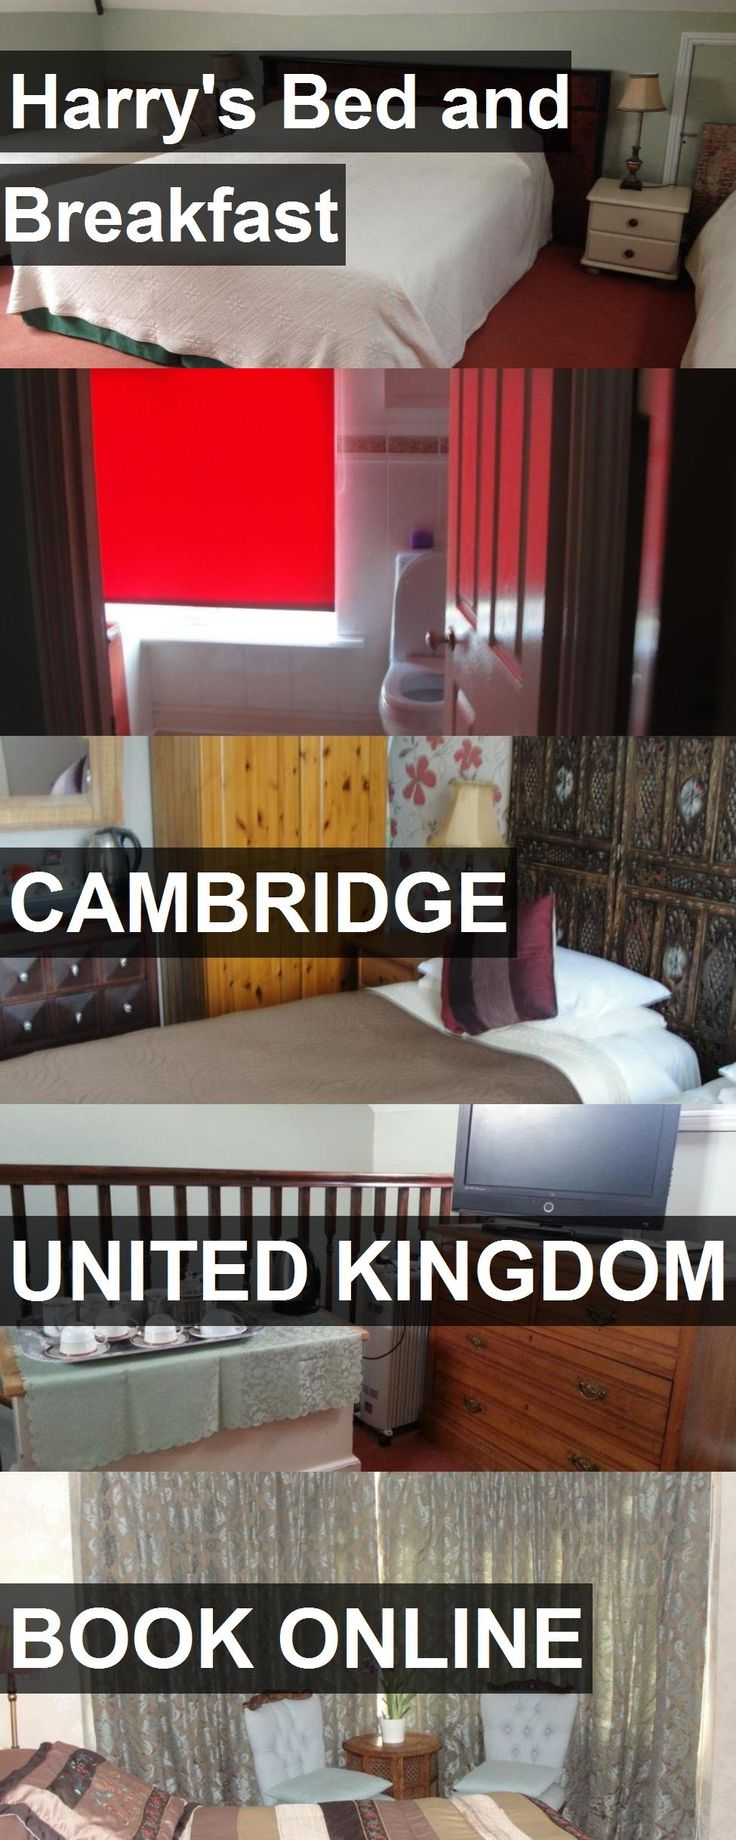 Hotel Harry's Bed and Breakfast in Cambridge, United Kingdom. For more information, photos, reviews and best prices please follow the link. #UnitedKingdom #Cambridge #Harry'sBedandBreakfast #hotel #travel #vacation